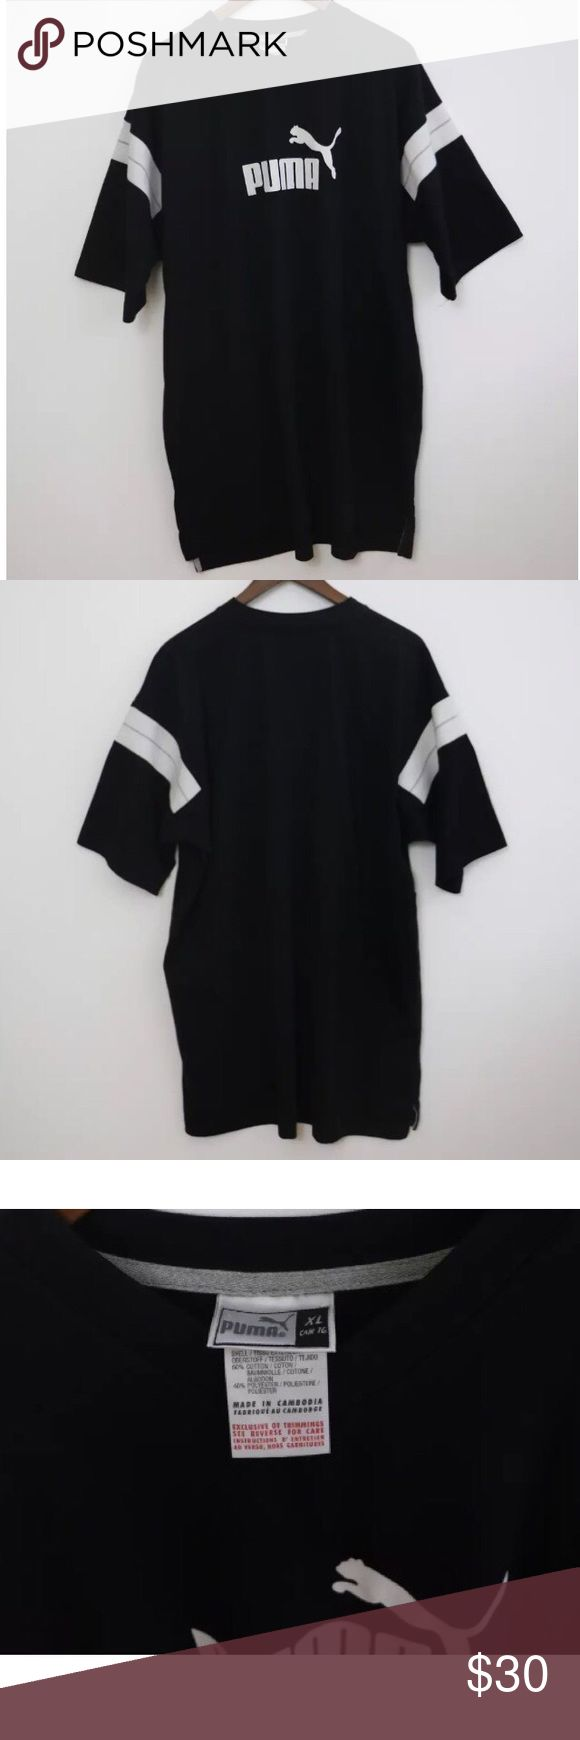 """XL Men's Puma Long Shirt Men's long style Puma black shirt in good condition with a small pen mark on the letter """"P"""". Puma Shirts Tees - Short Sleeve"""